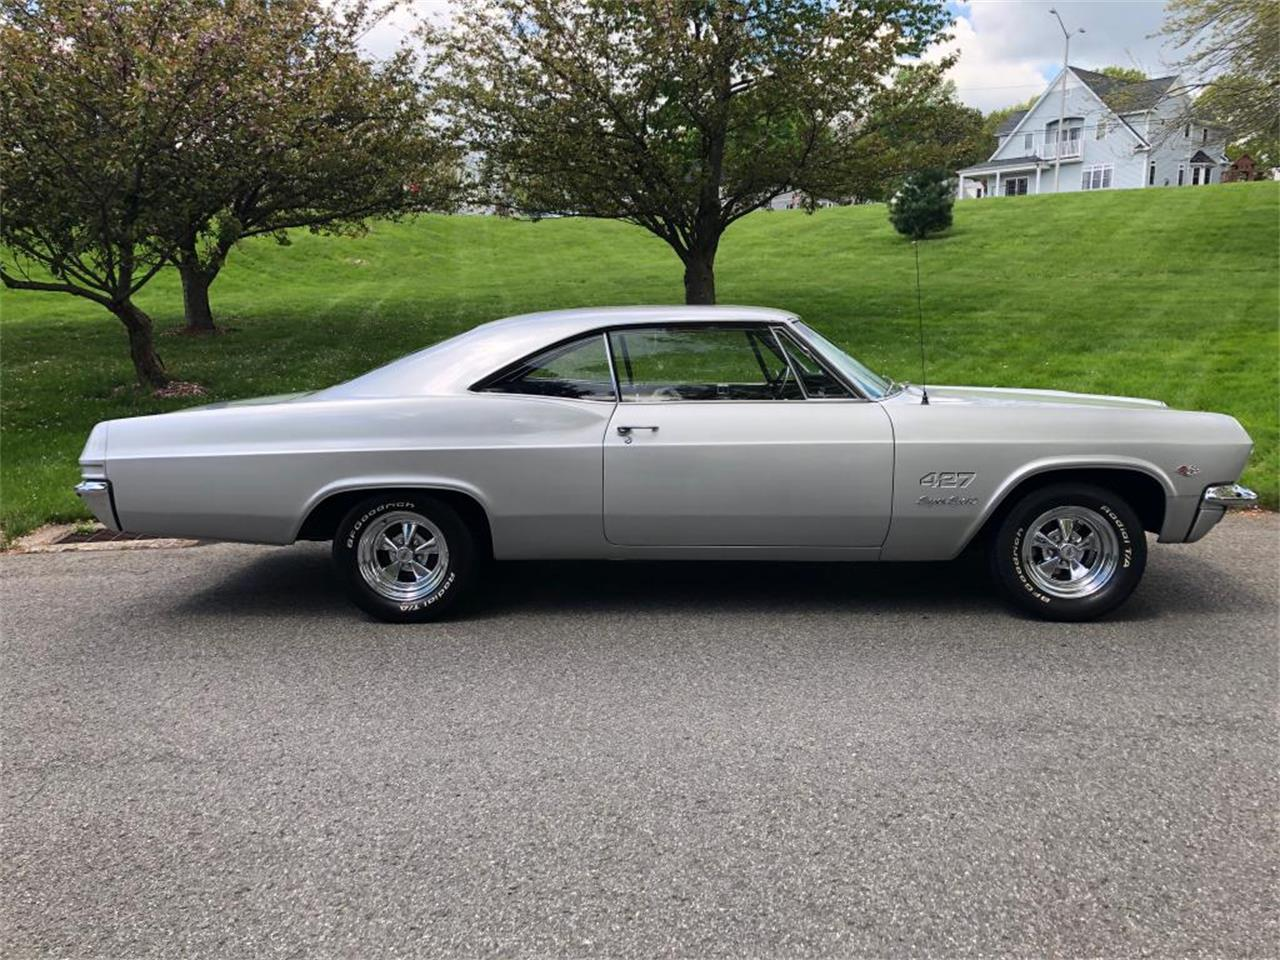 Large Picture of Classic '65 Impala located in Milford City Connecticut - $34,000.00 - Q47Y